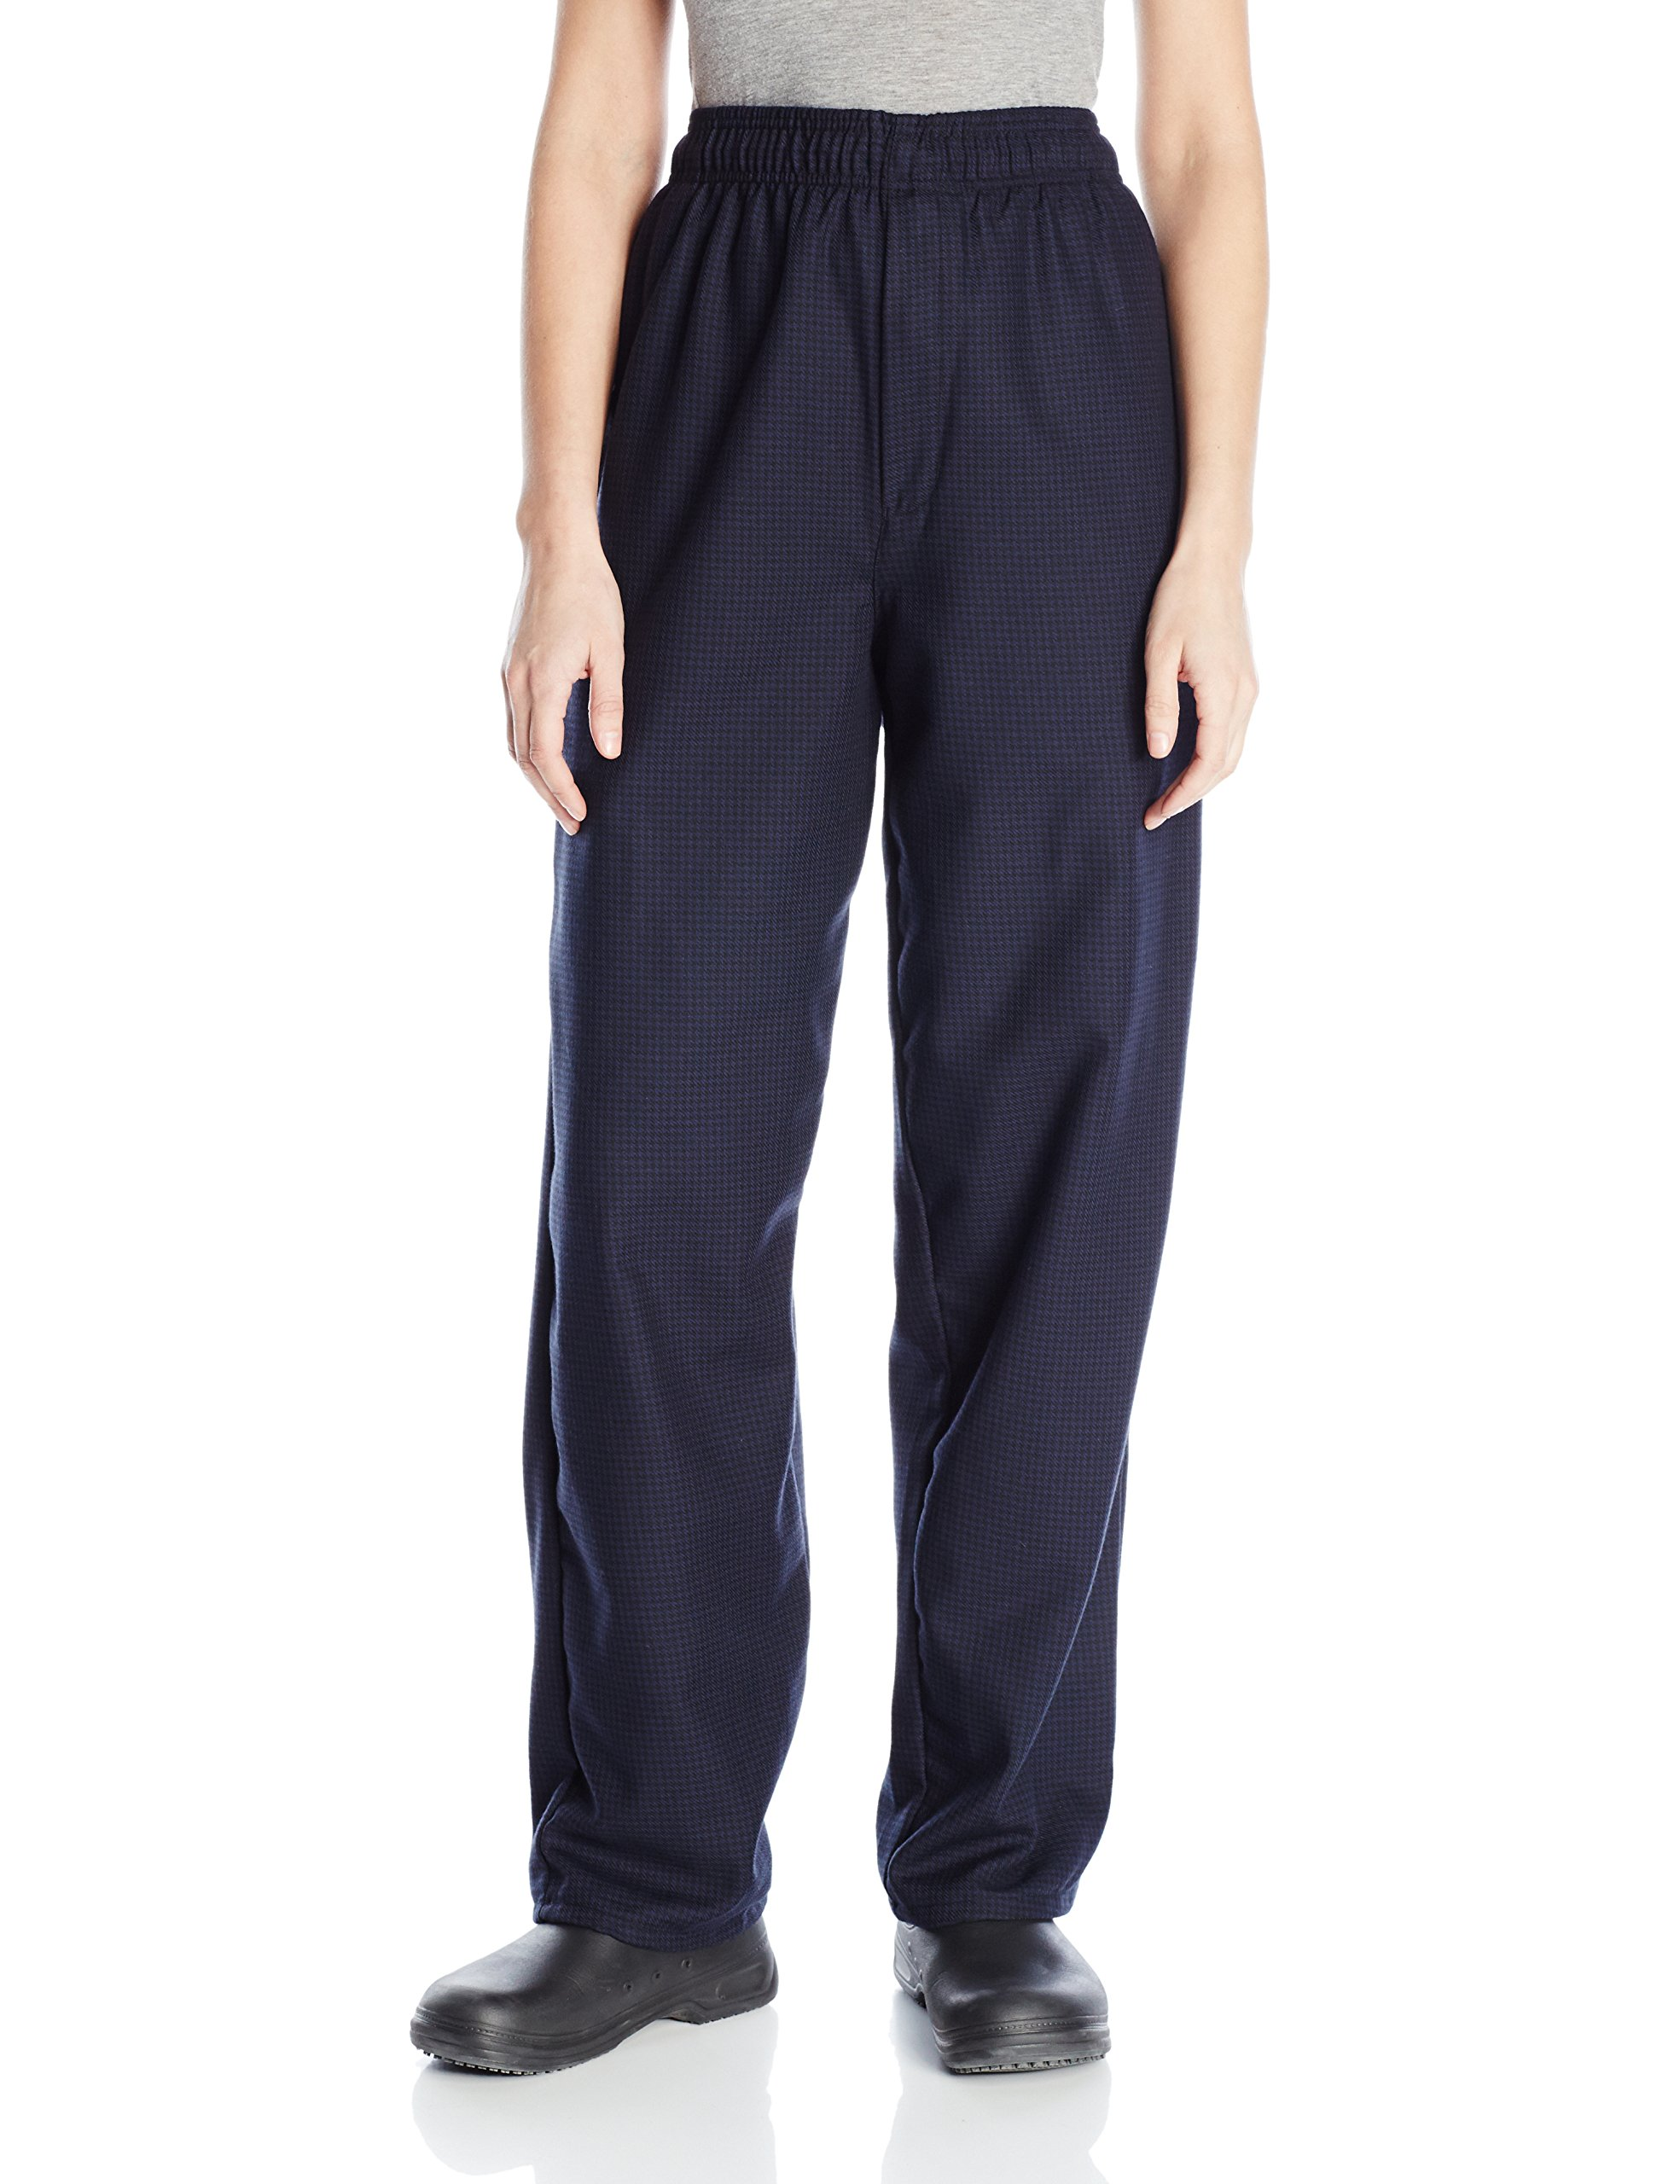 Uncommon Threads Unisex Yarn Dyed Baggy Chef Pant, Black/Navy Hounds Tooth, Large